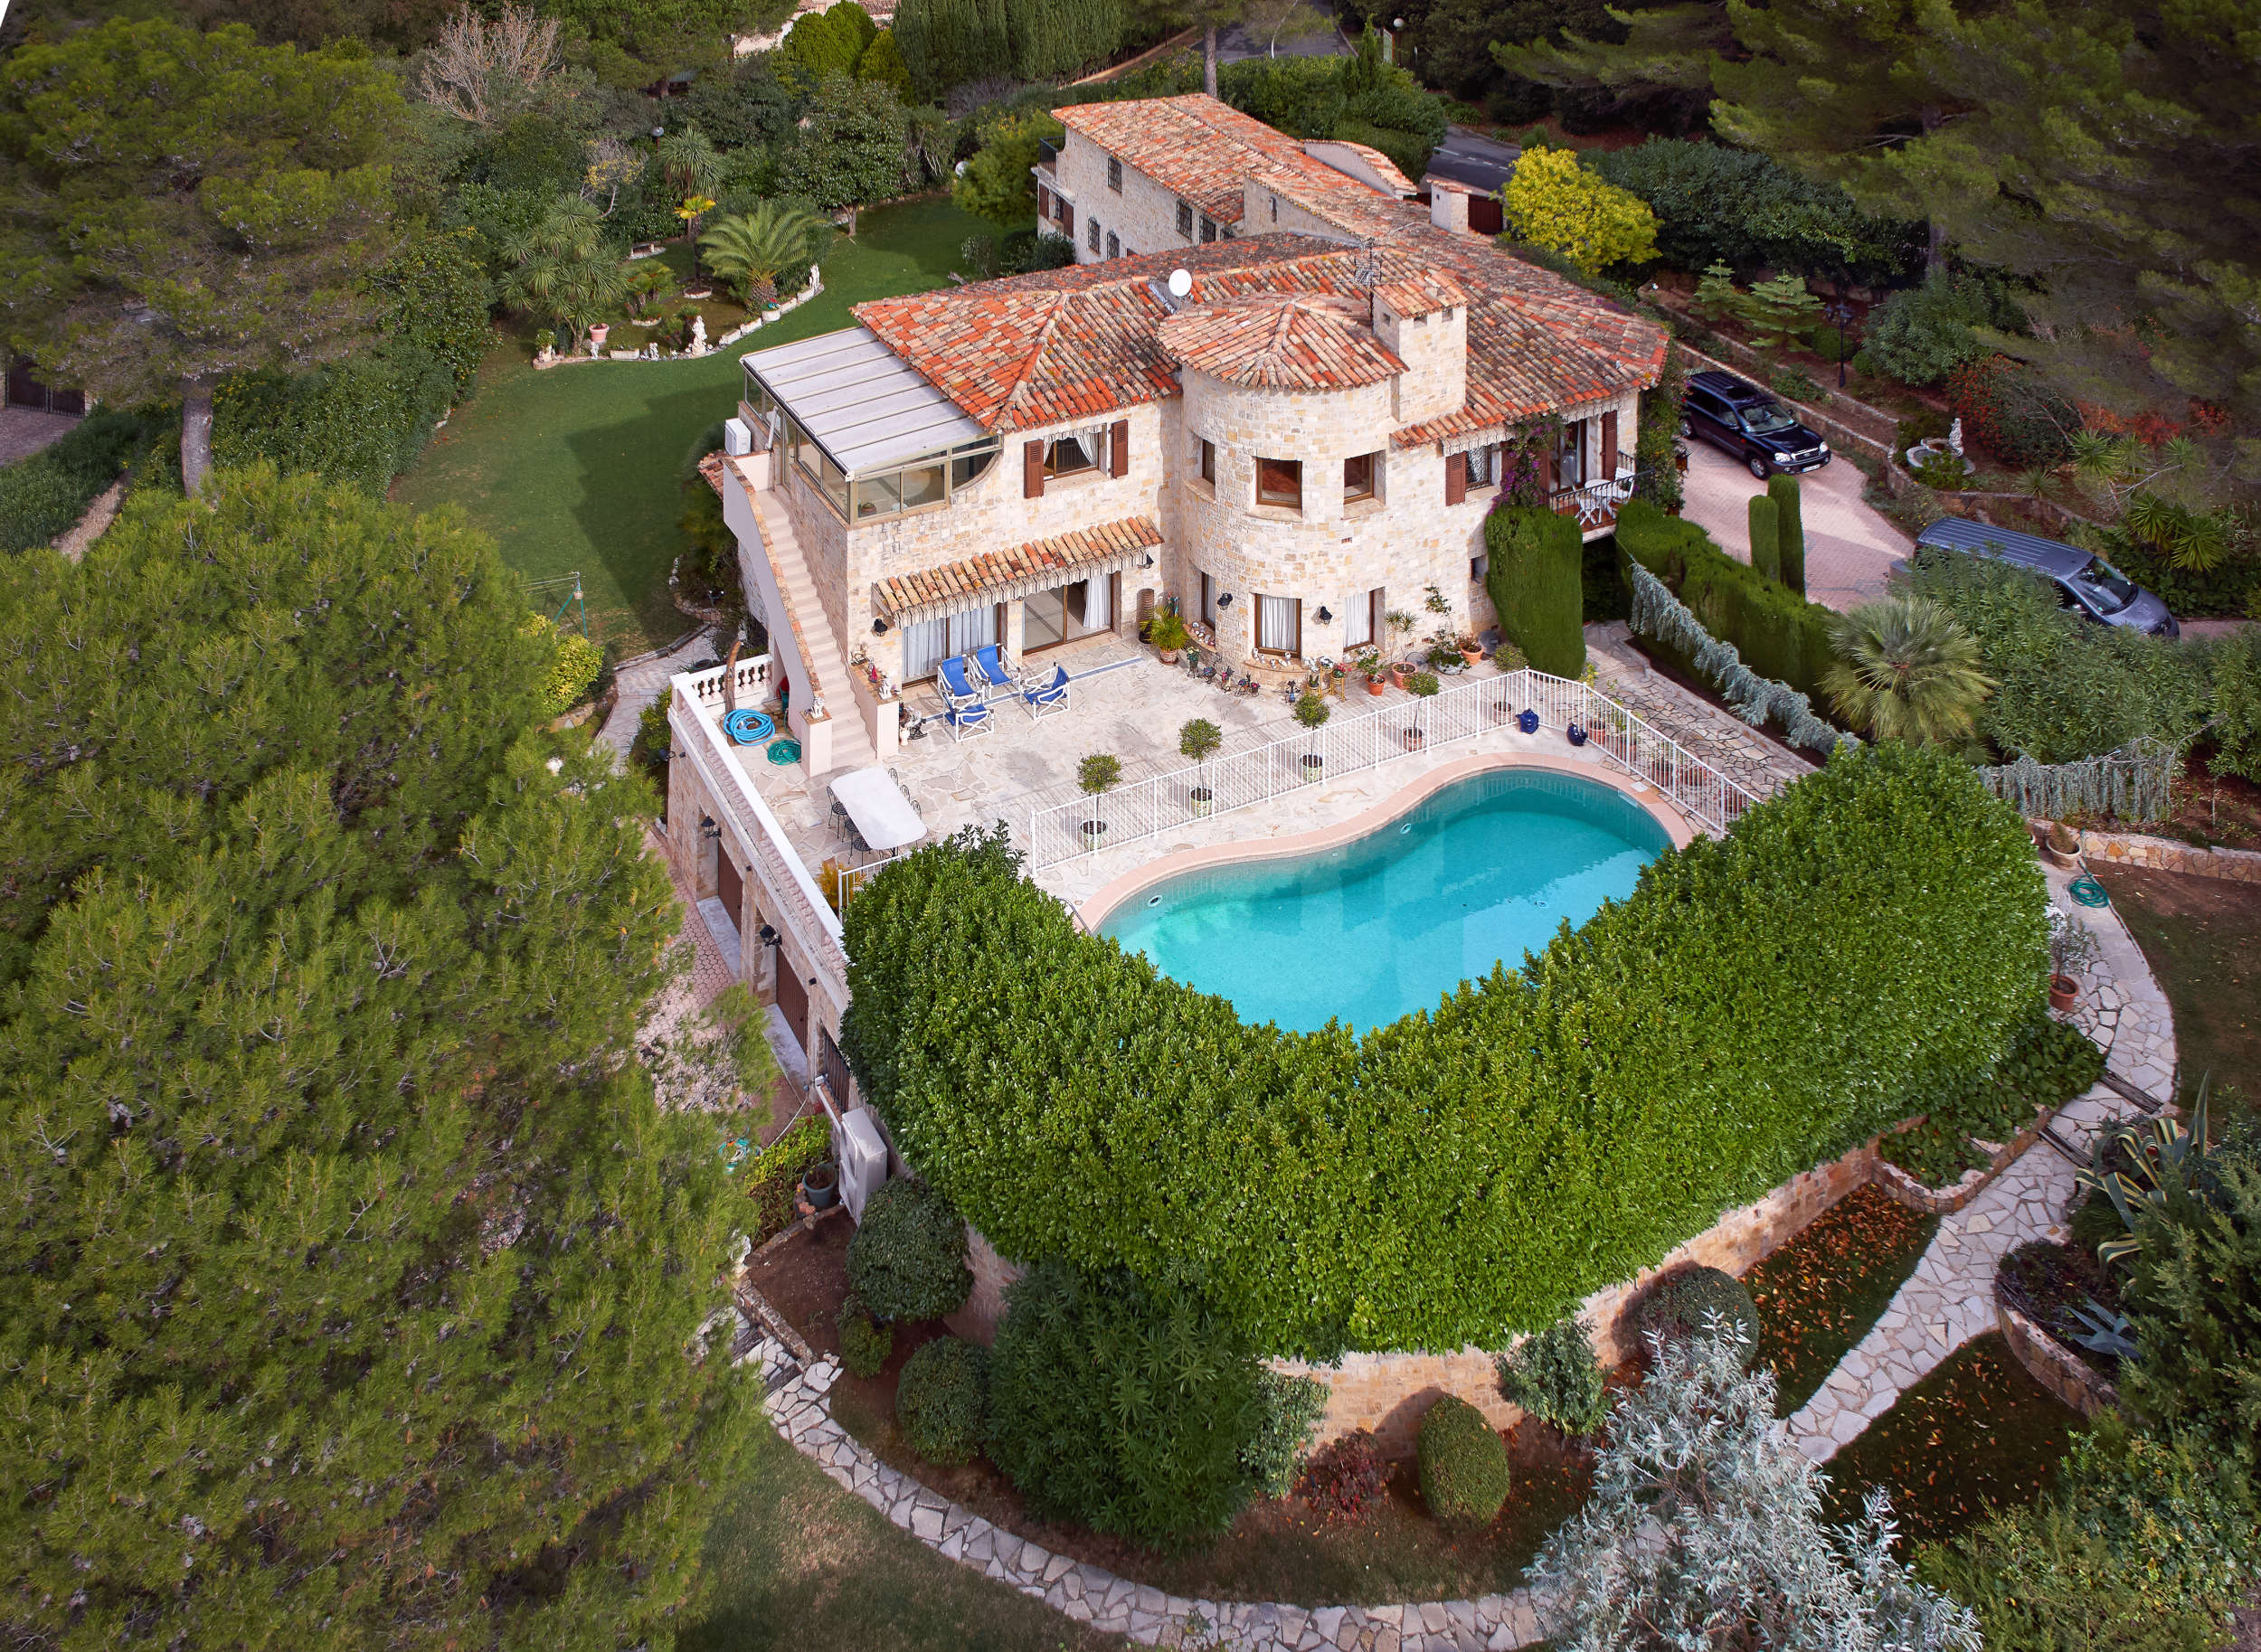 Single Family Home for Sale at Sole Agents - Private Estate - Spacious Country House for sale in Mougins Mougins, Provence-Alpes-Cote D'Azur 06250 France